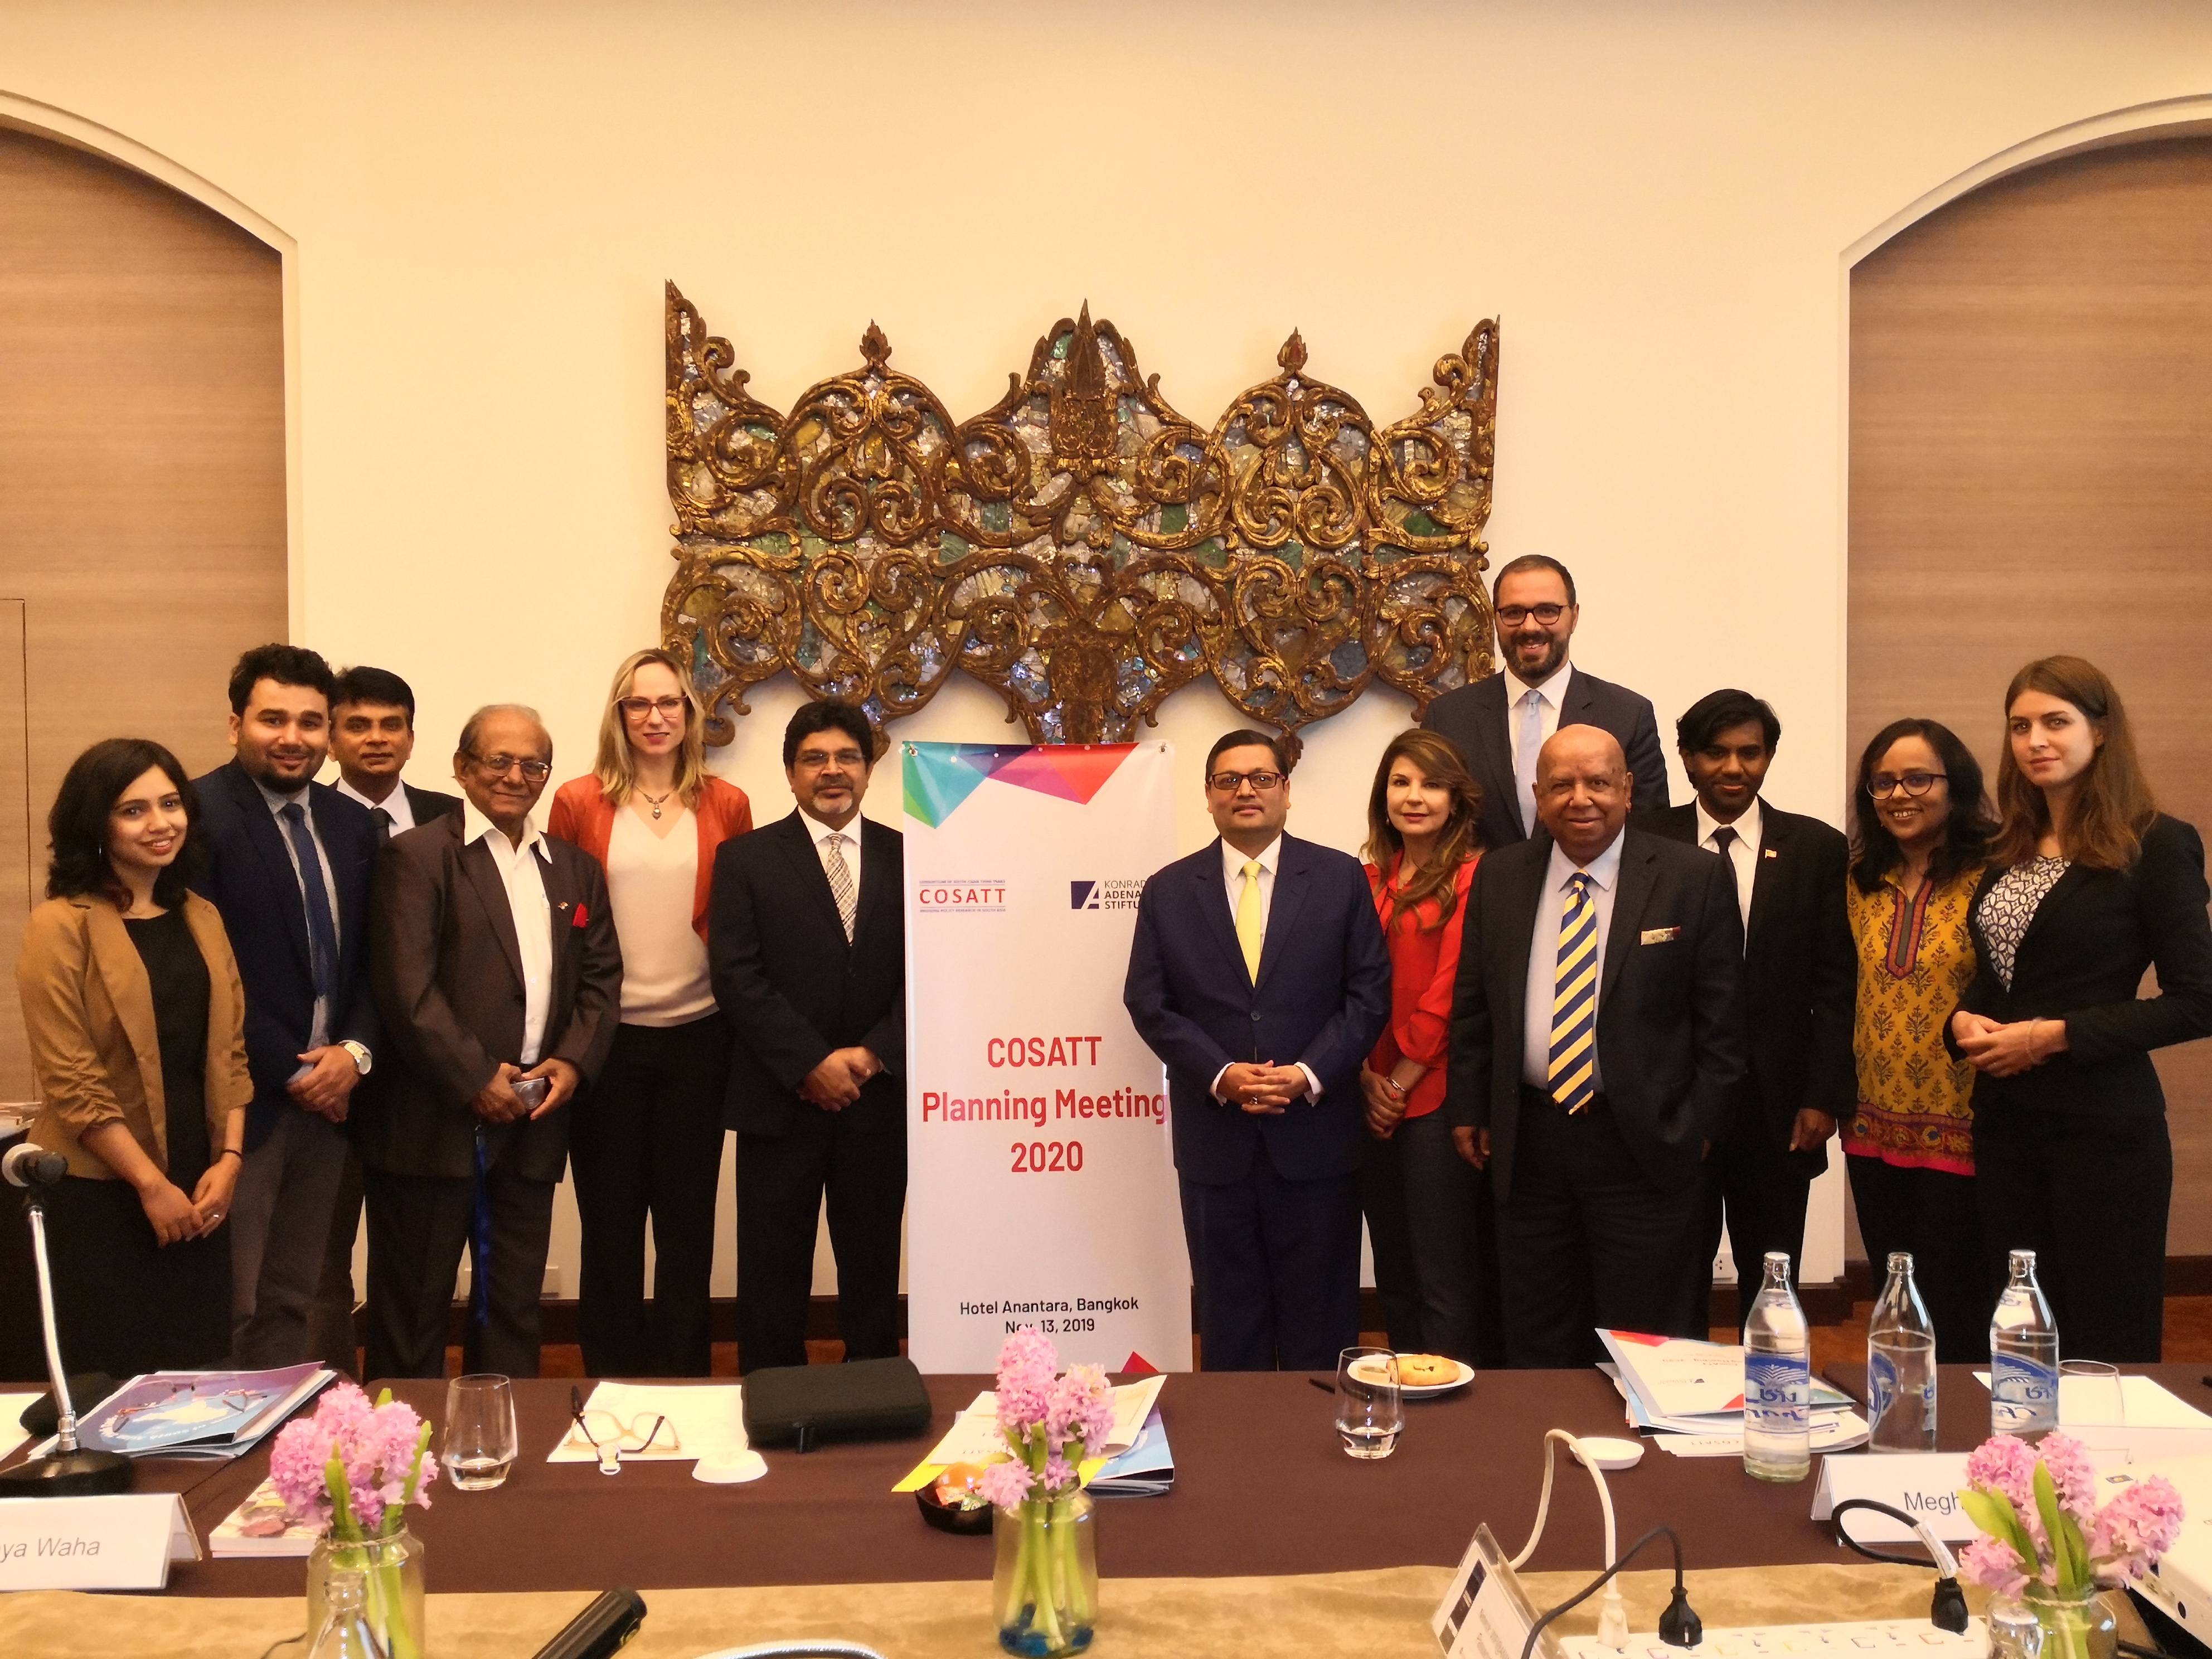 Asia-Pacific Think-Tank Summit and COSATT Planning 2020 meeting held in Bangkok